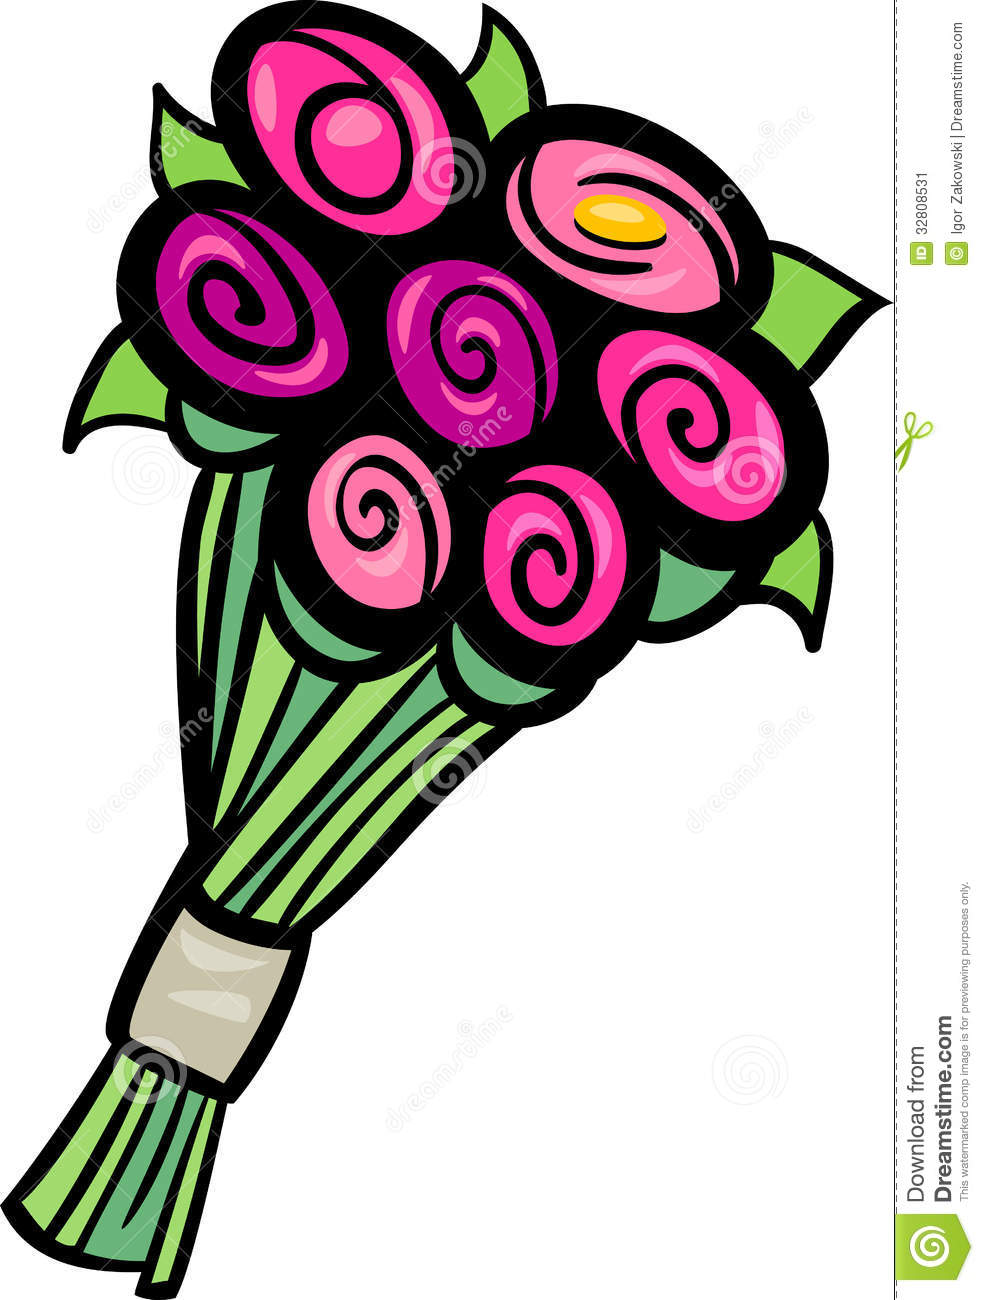 Flowers Clip Art Cartoon Illustration